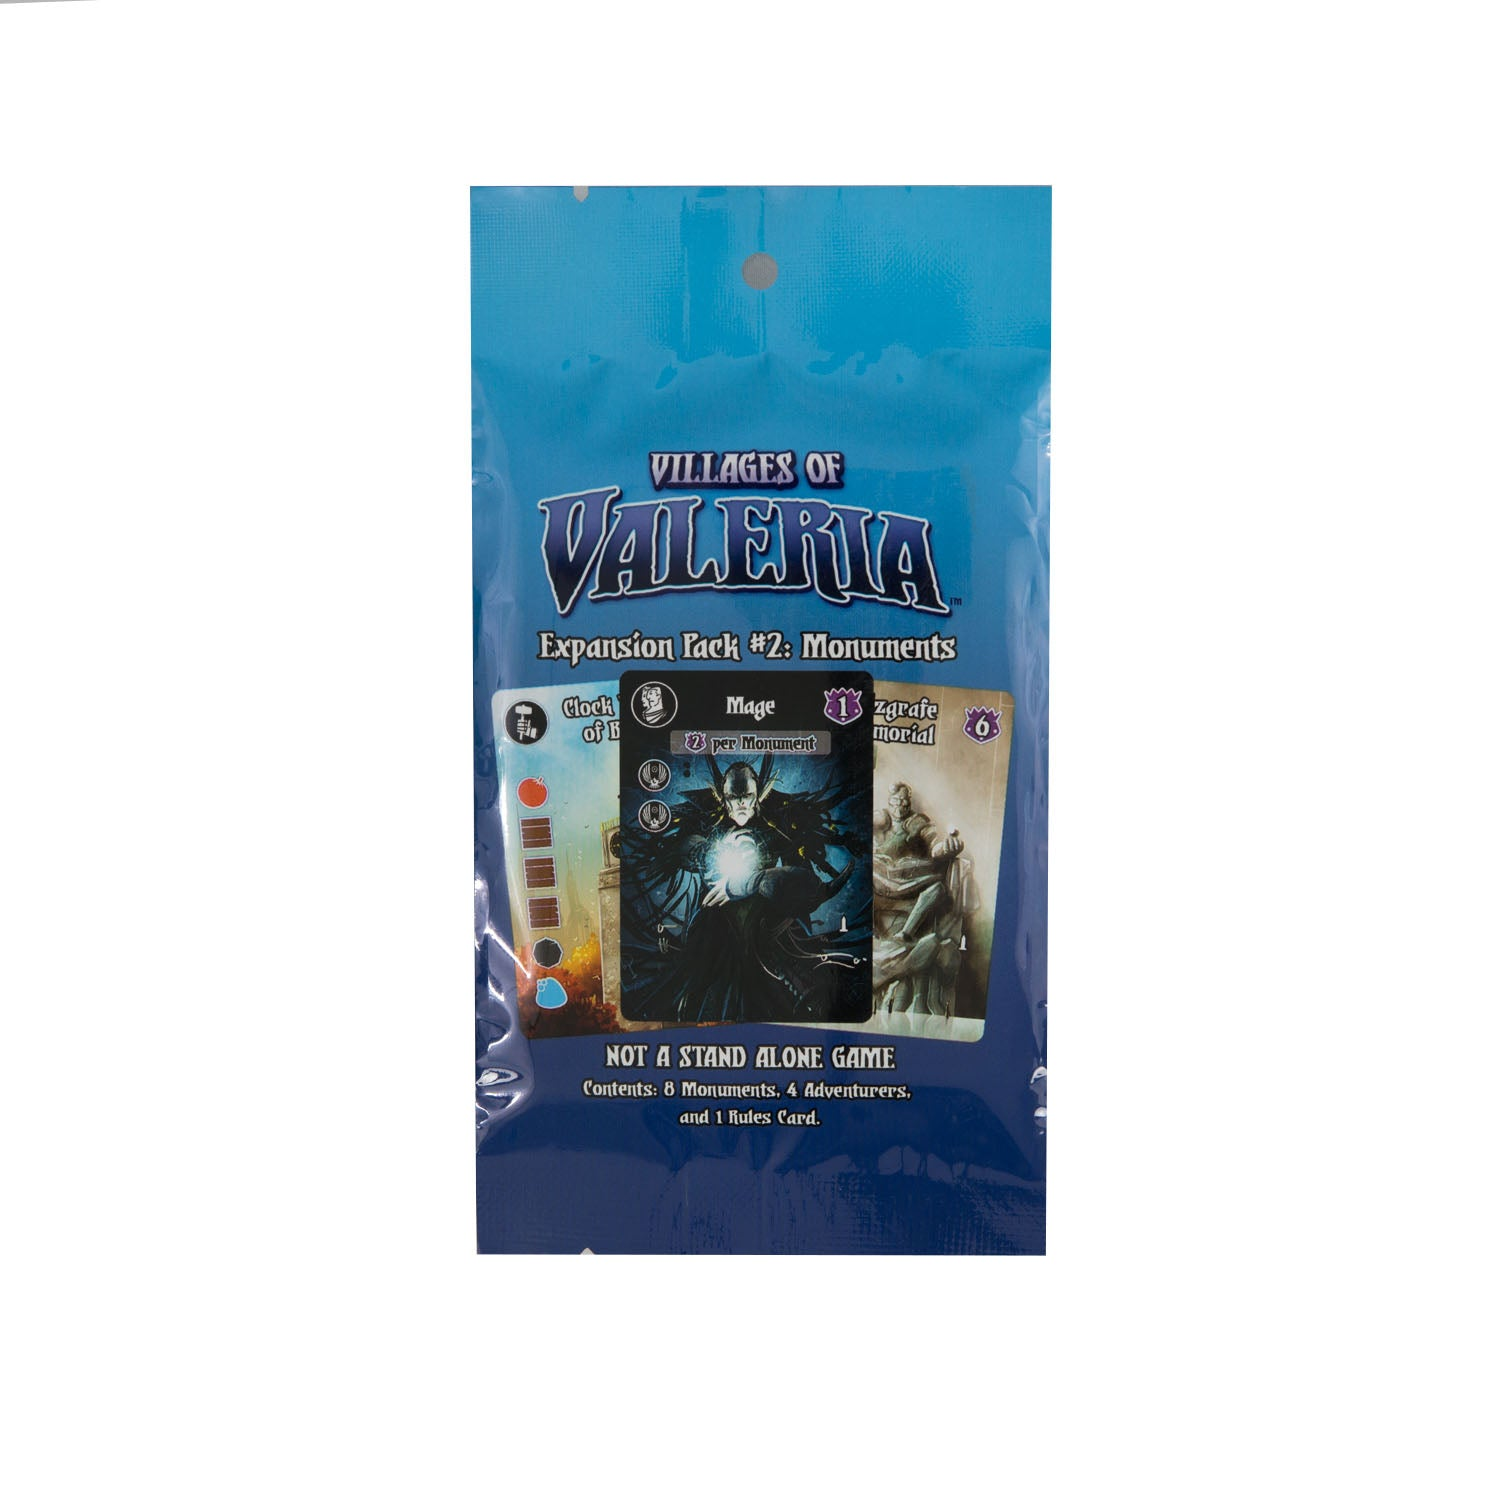 Villages of Valeria: Monuments Expansion